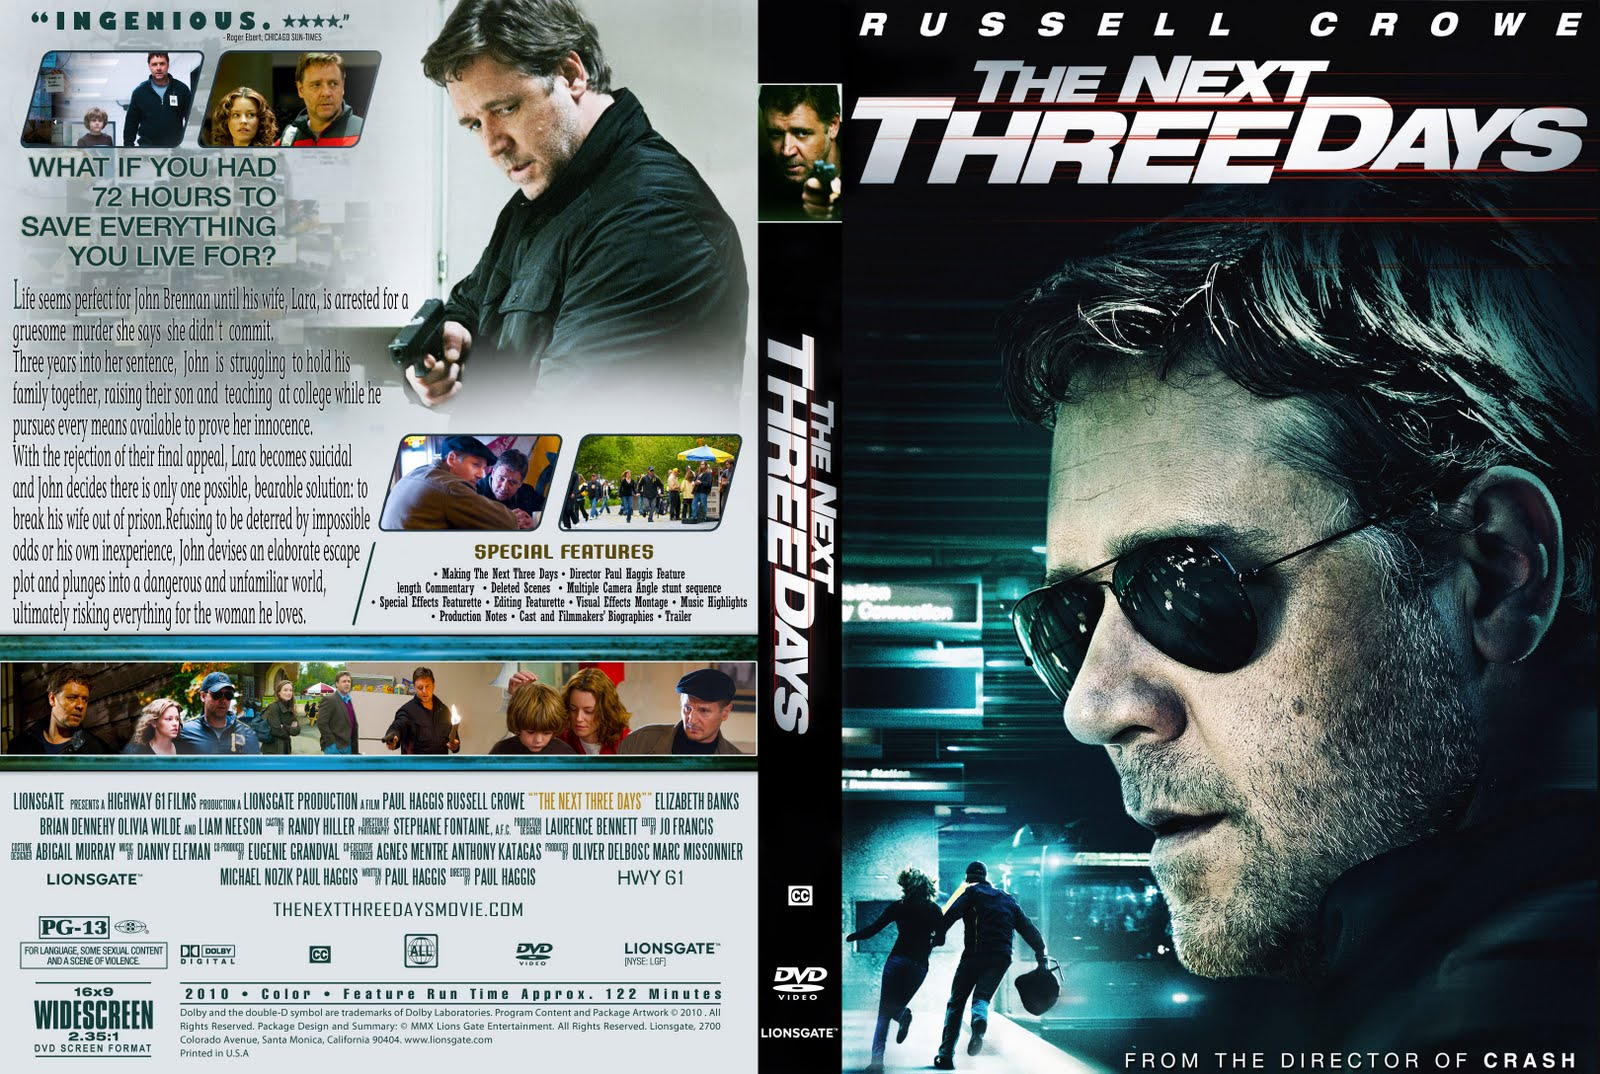 Dvd Covers Free: The Next Three Days